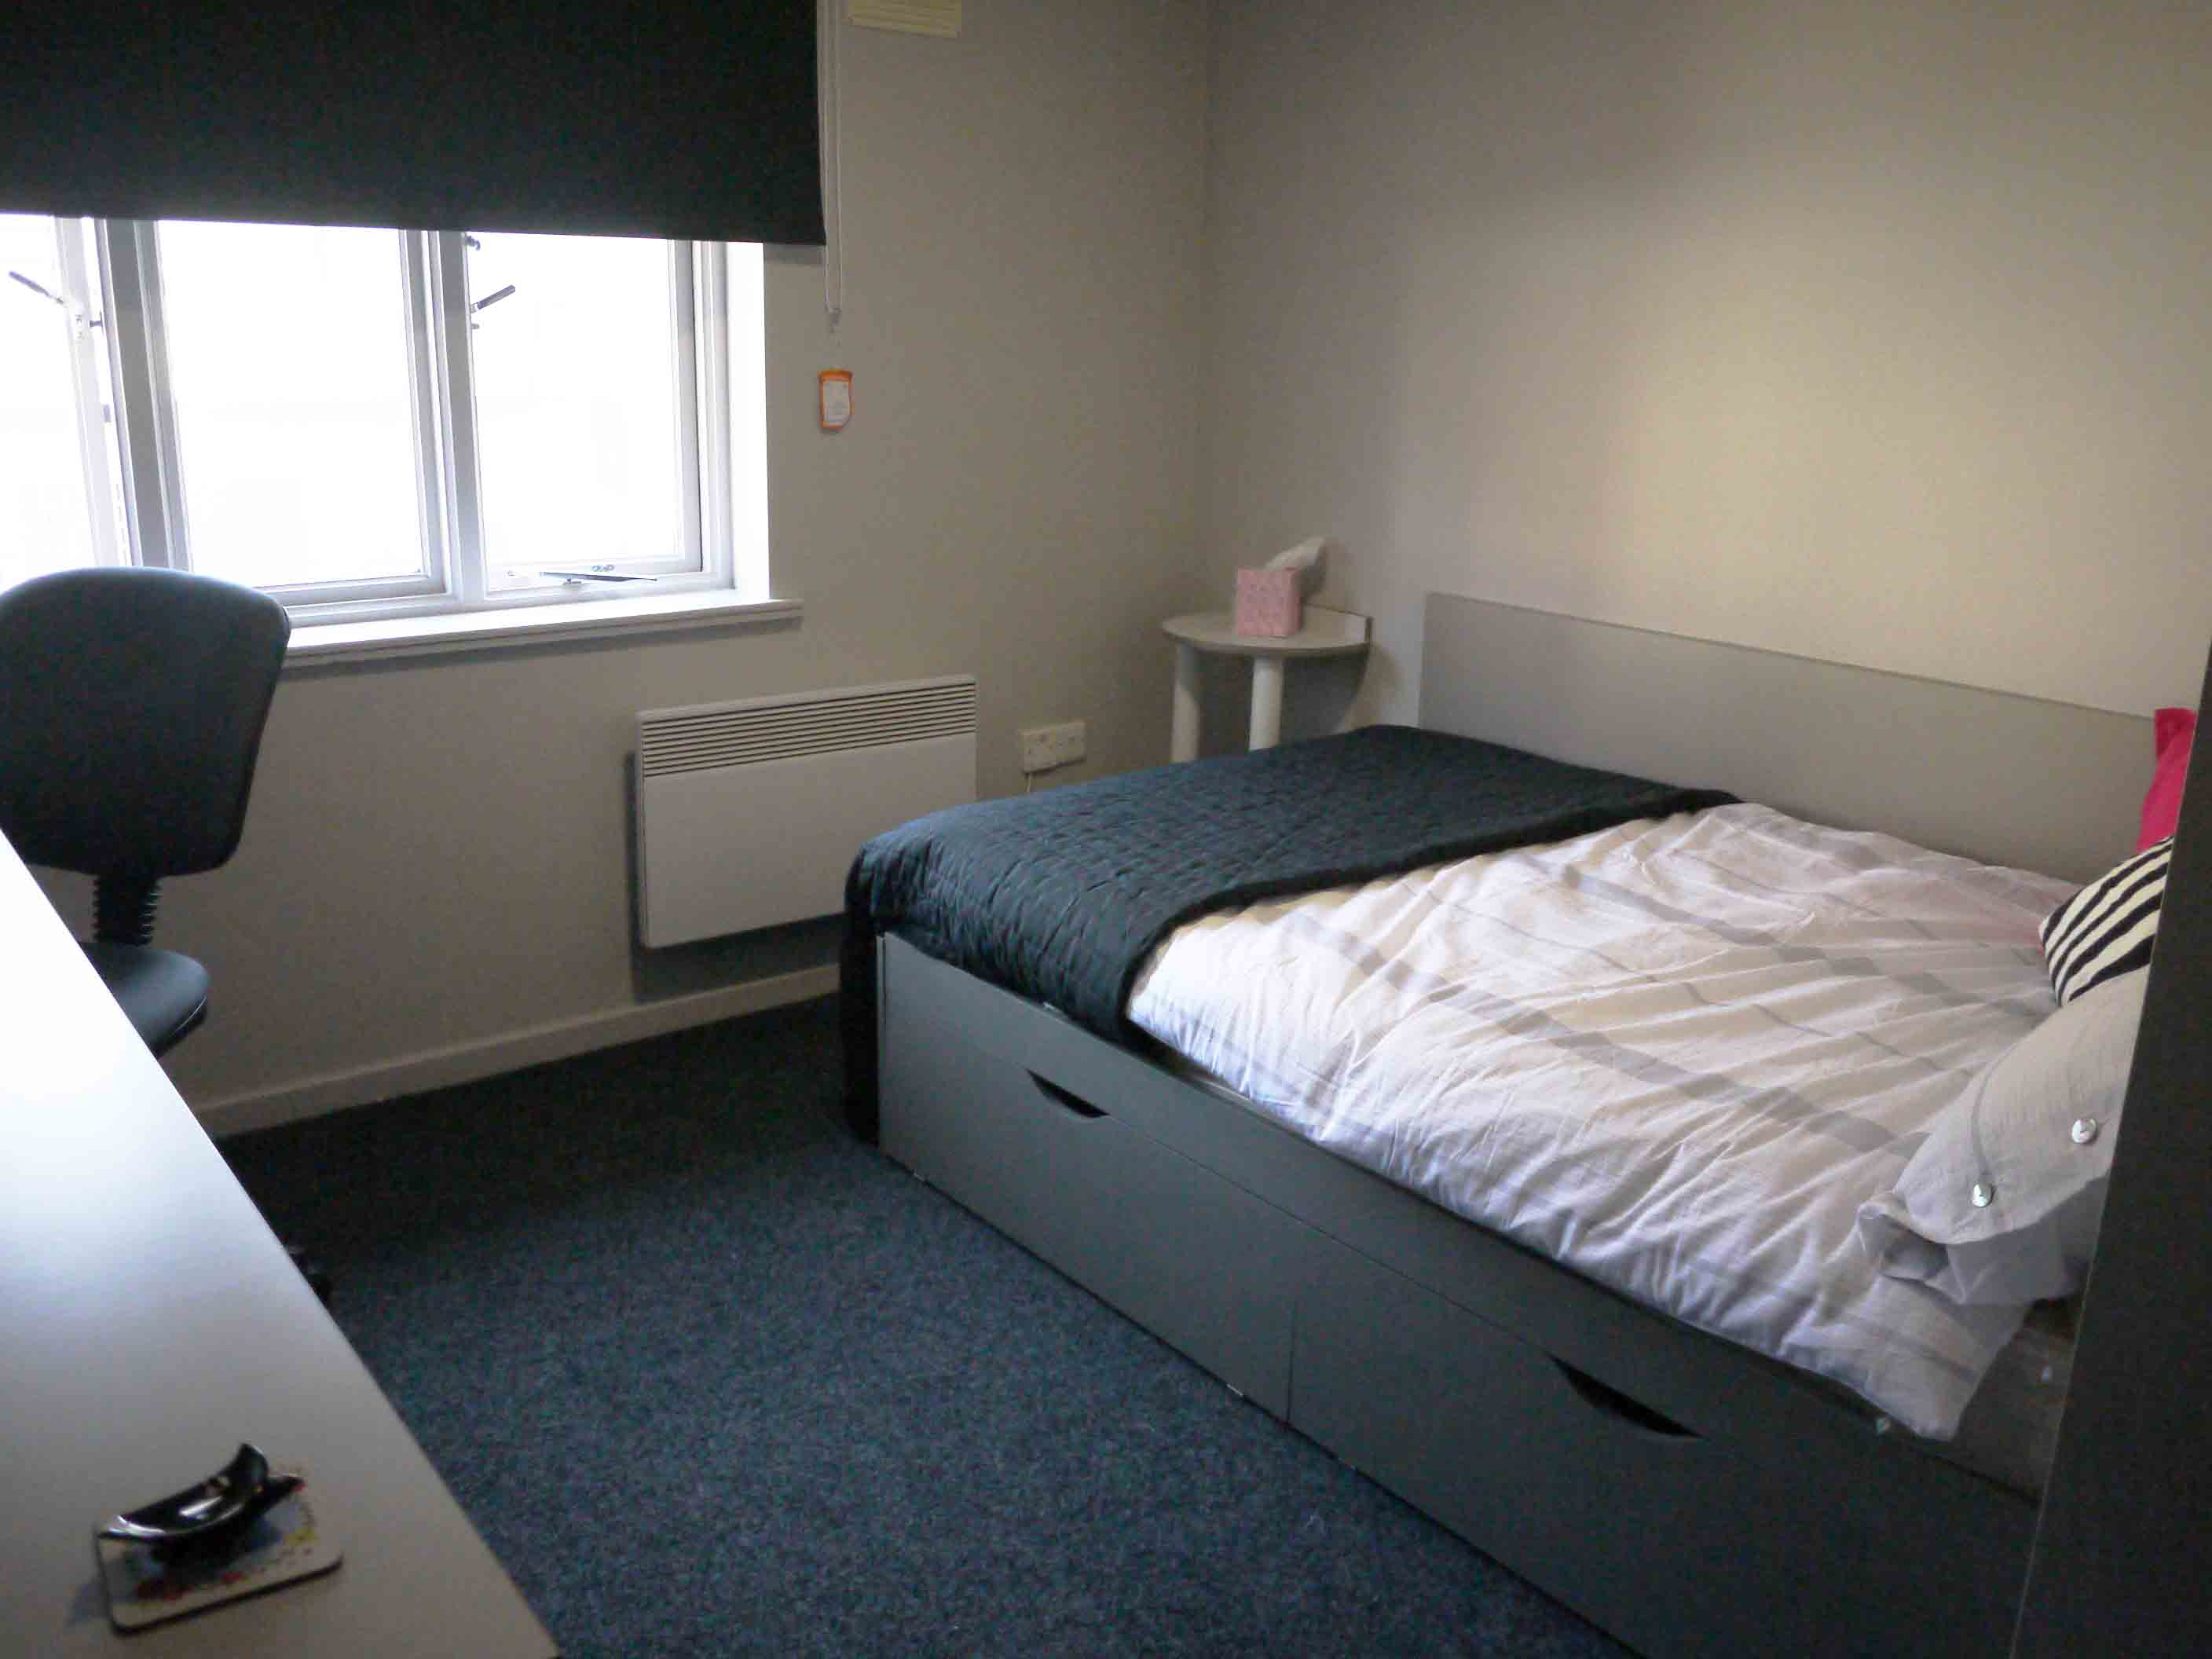 Myrtle-Street-Liverpool-Bedroom-Unilodgers